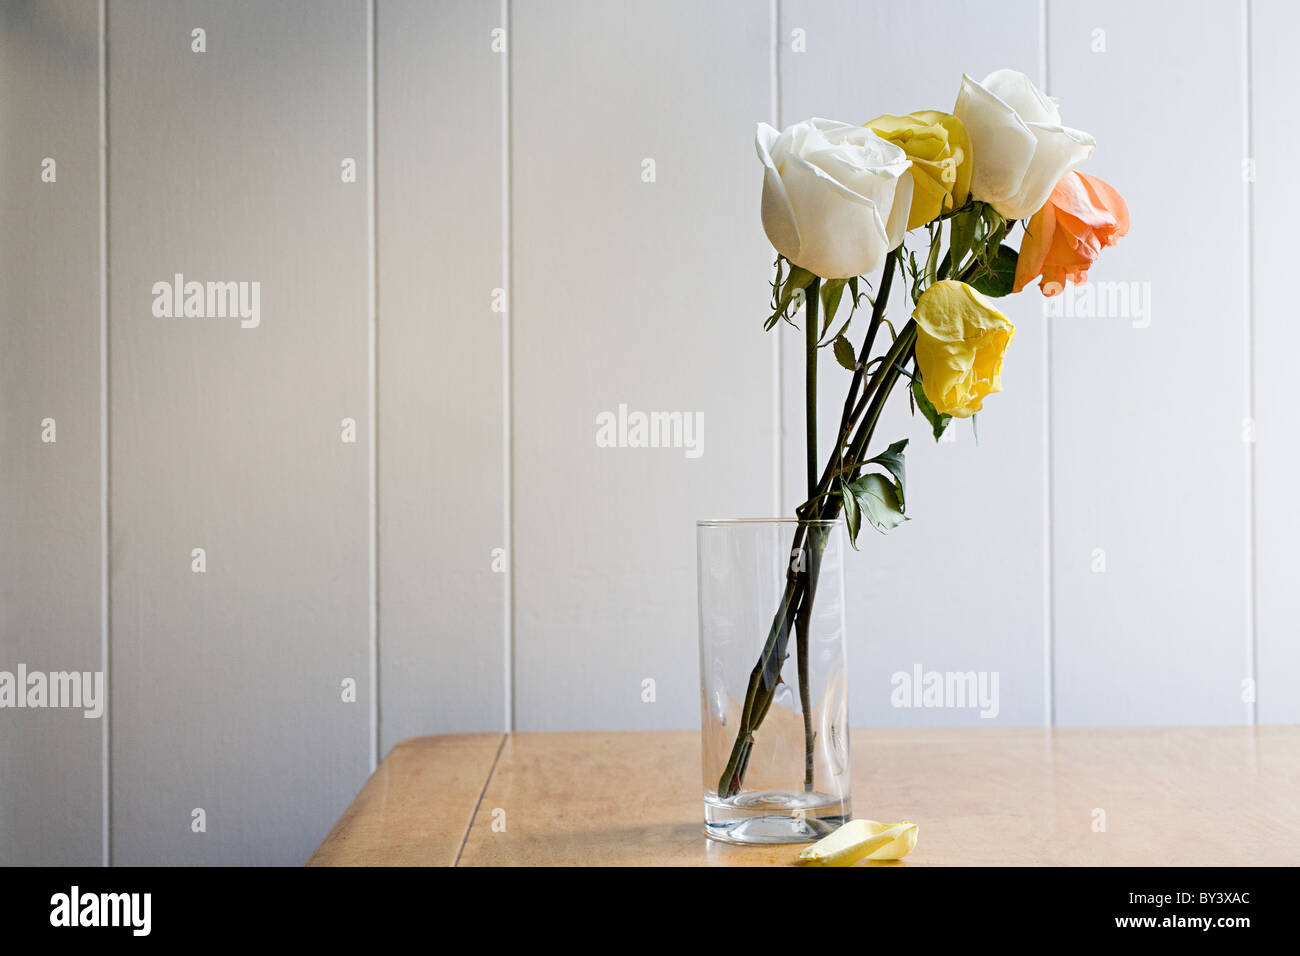 Dying roses - Stock Image